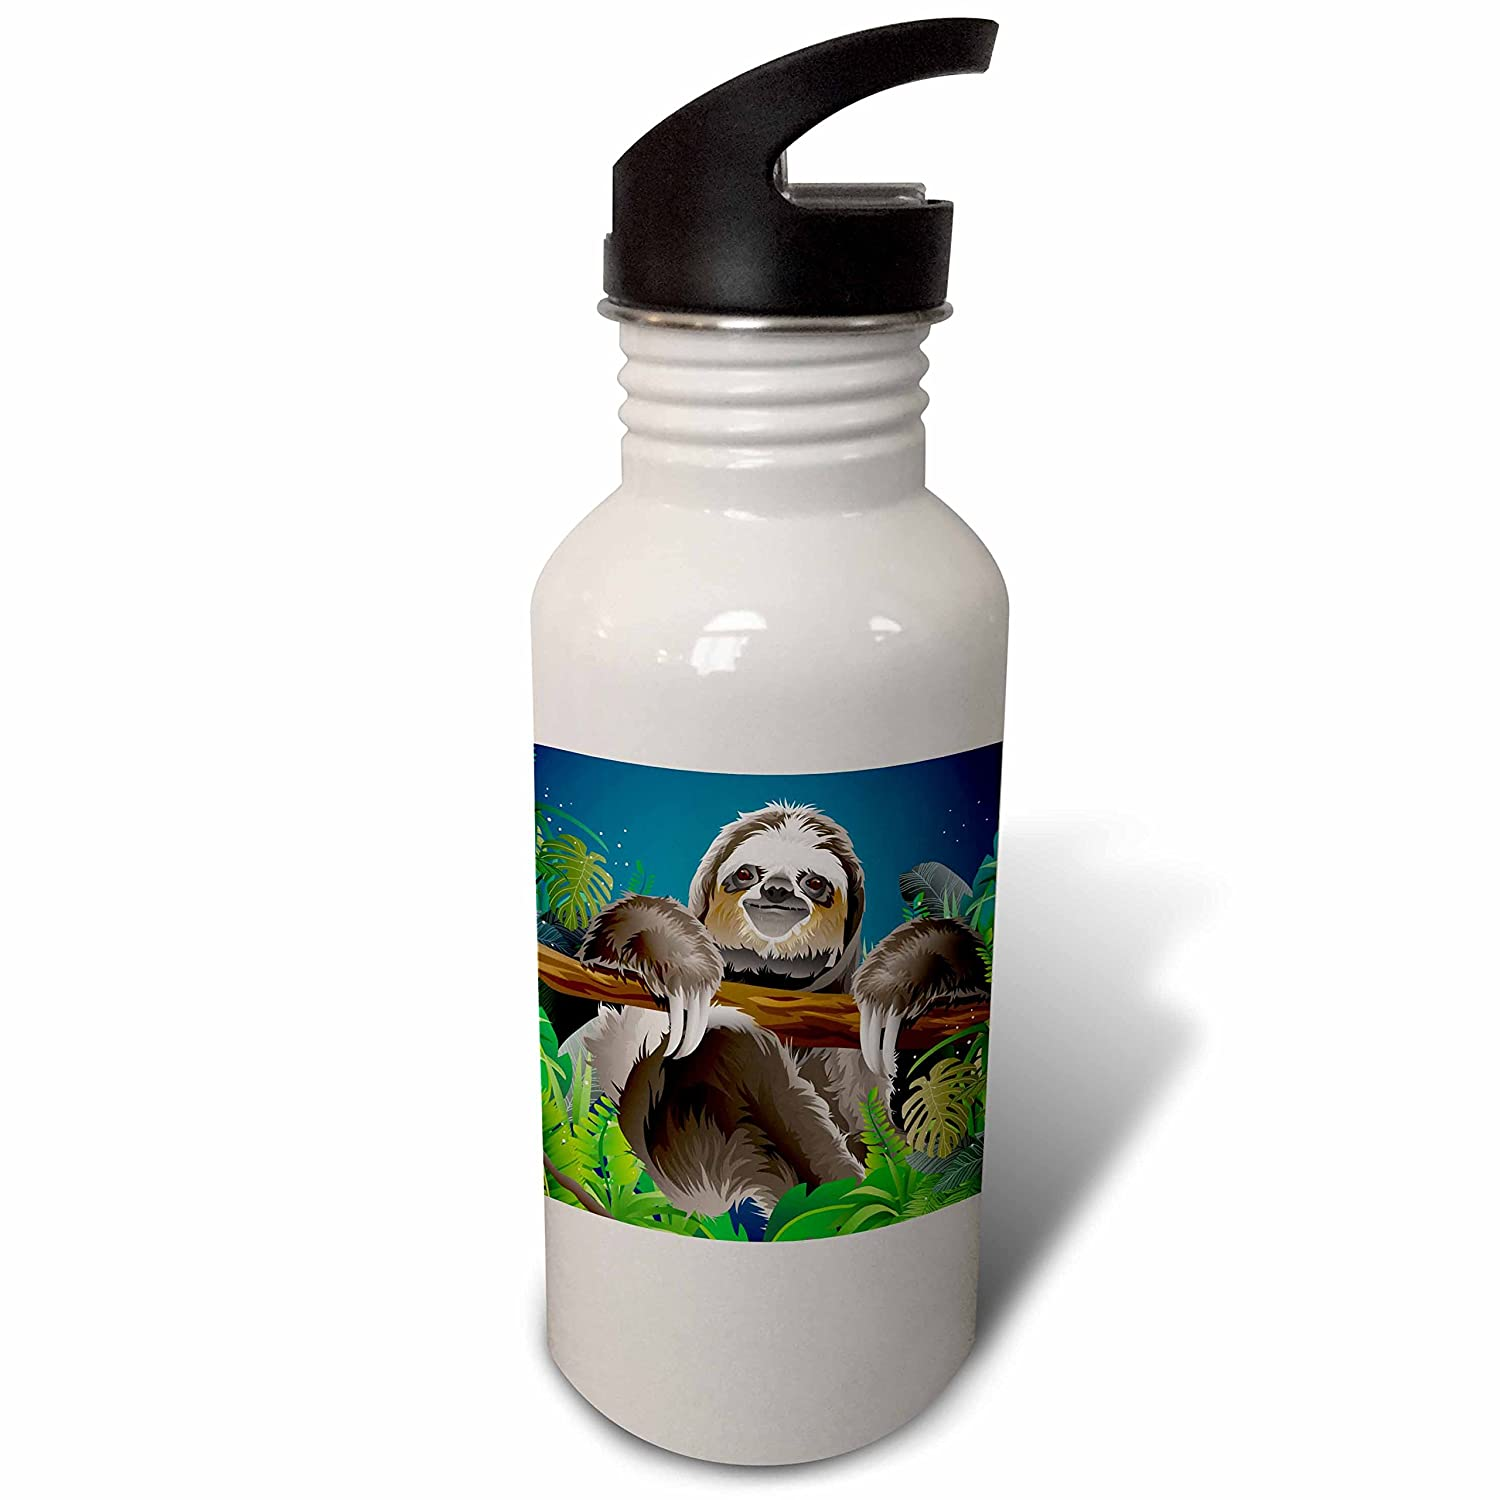 Flip Straw 21oz Water Bottle 3dRose Sven Herkenrath Animal A Cute Illustration of a Sloth Chilling on a Tree wb/_281661/_2